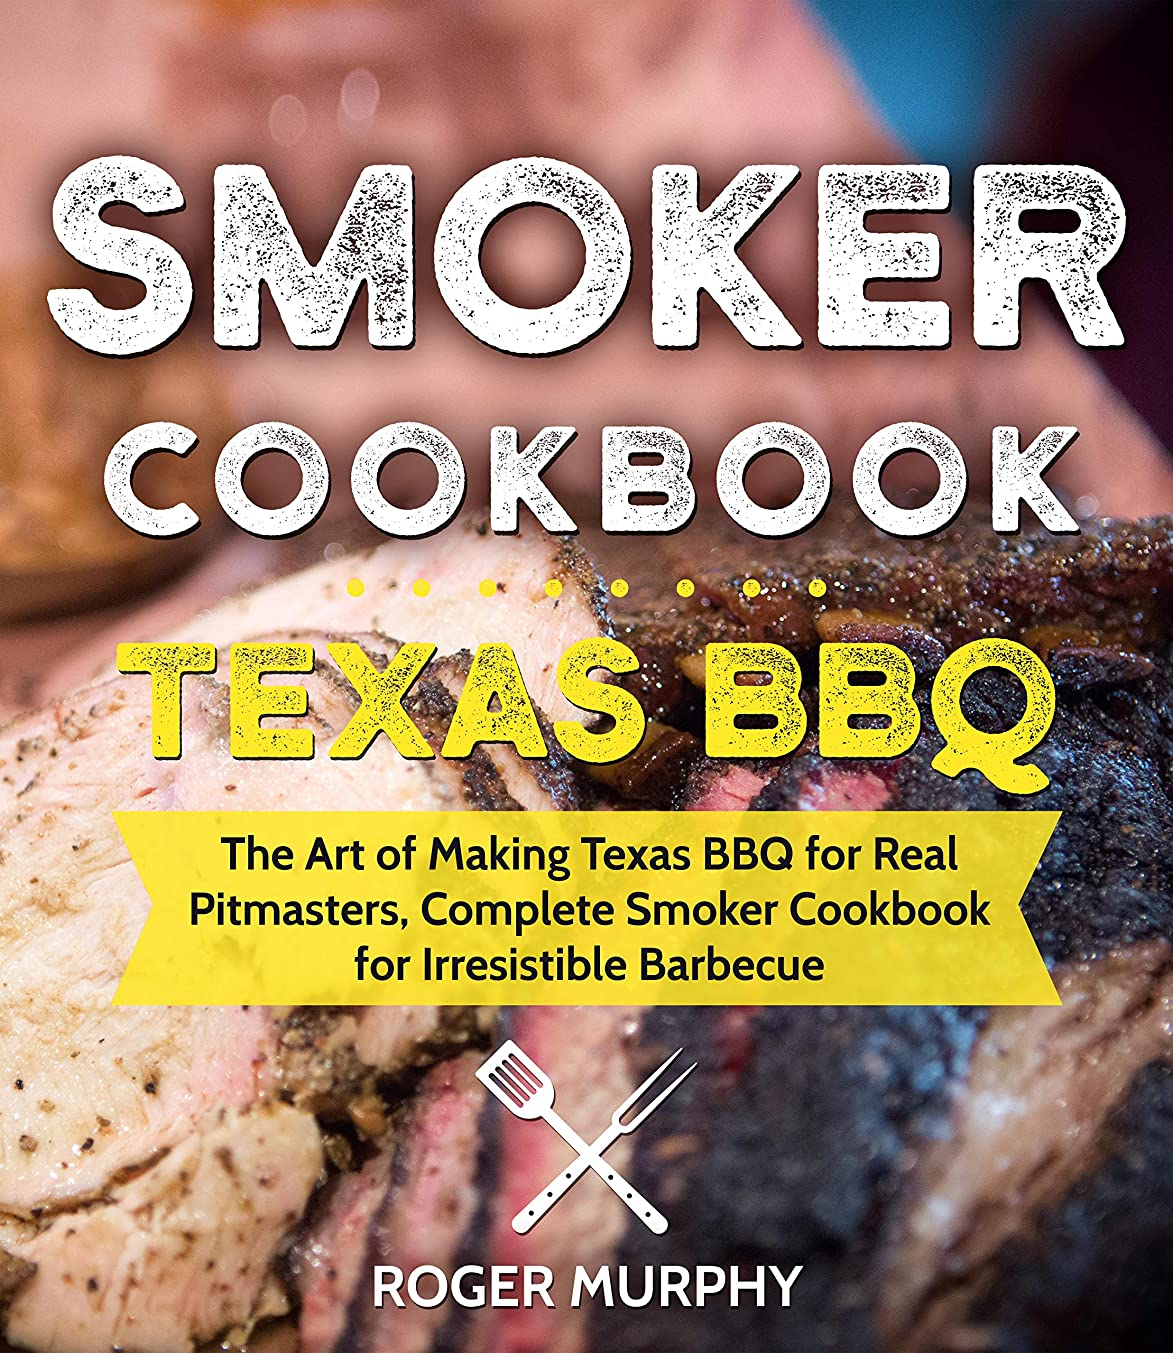 市の中心部マナー空虚Smoker Cookbook: Texas BBQ: The Art of Making Texas BBQ for Real Pitmasters, Complete Smoker Cookbook for Irresistible Barbecue (English Edition)